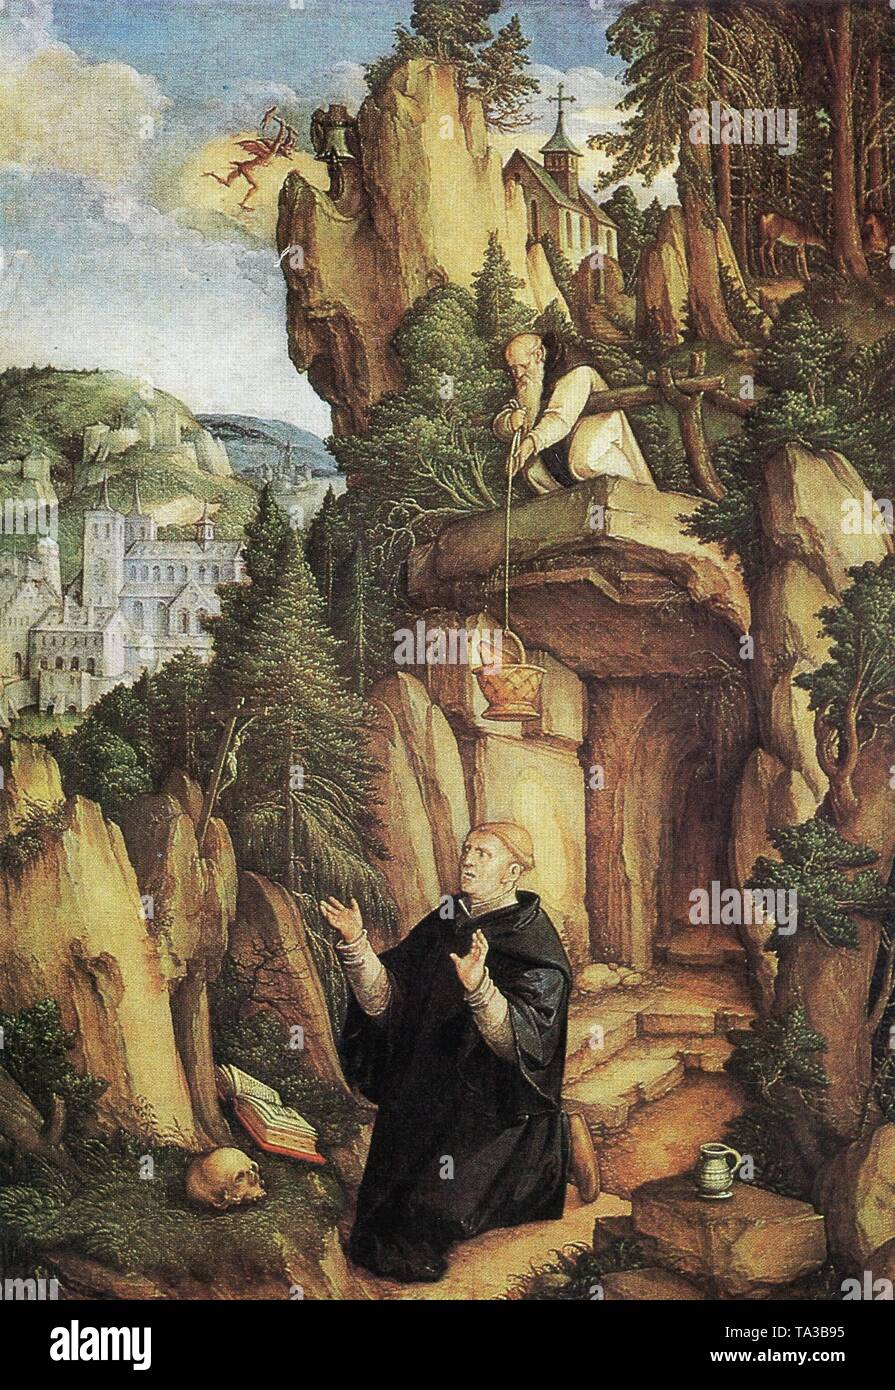 Representation of Saint Benedict of Nursia by Master of Messkirch, circa 1500, probably 1543 - Stock Image